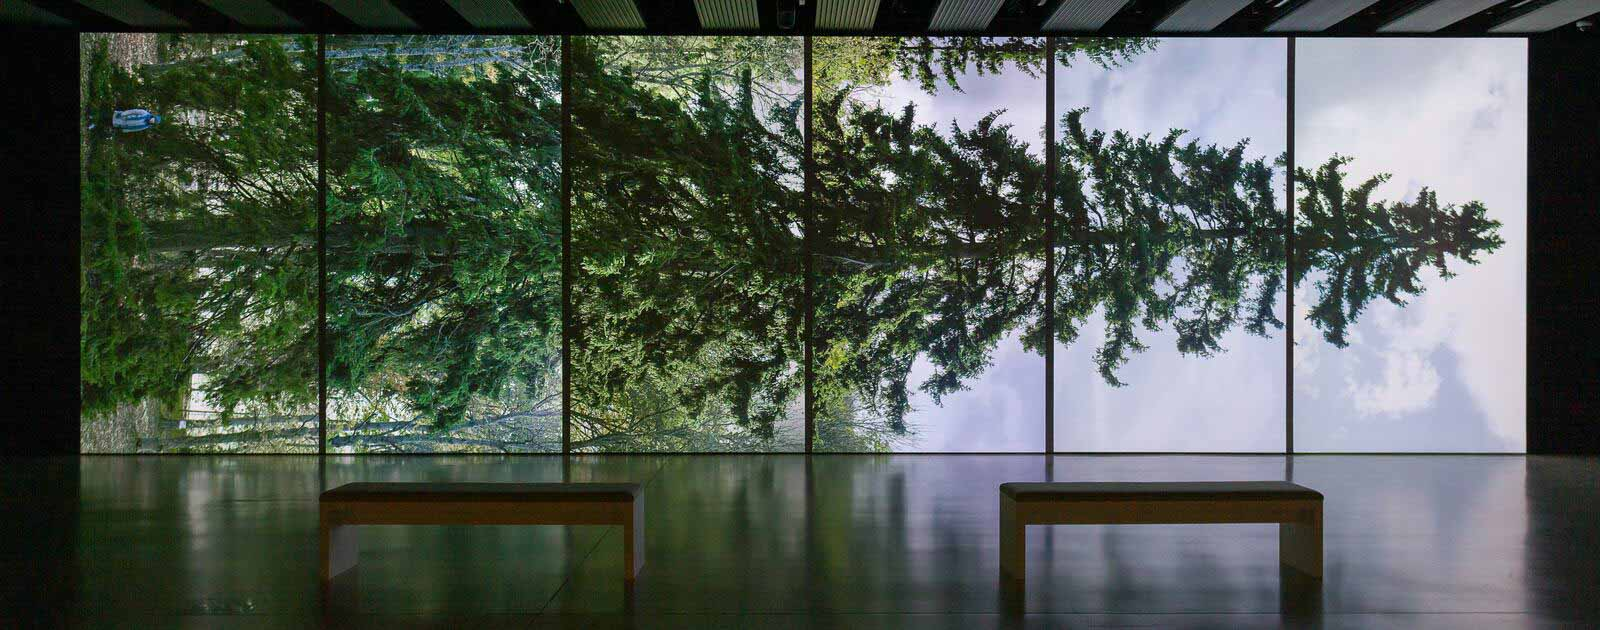 Two benches in front of an exhibition display at the Hayward Gallery, London, showing a giant projection of a tree, observed horizontally